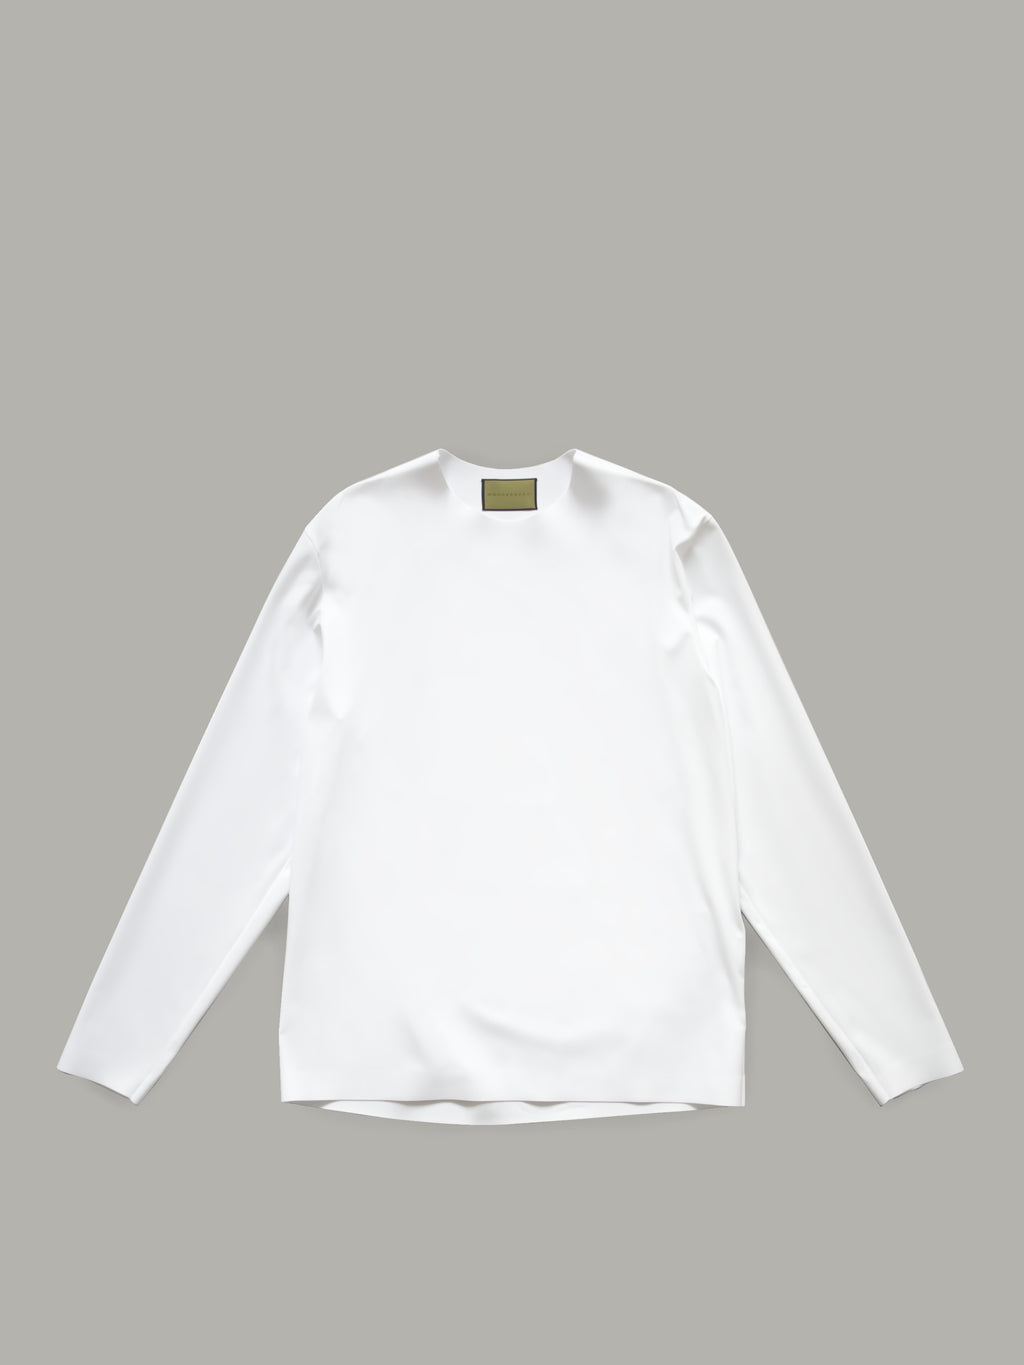 BONDED BASIC TOP WITH LONG SLEEVES - WHITE